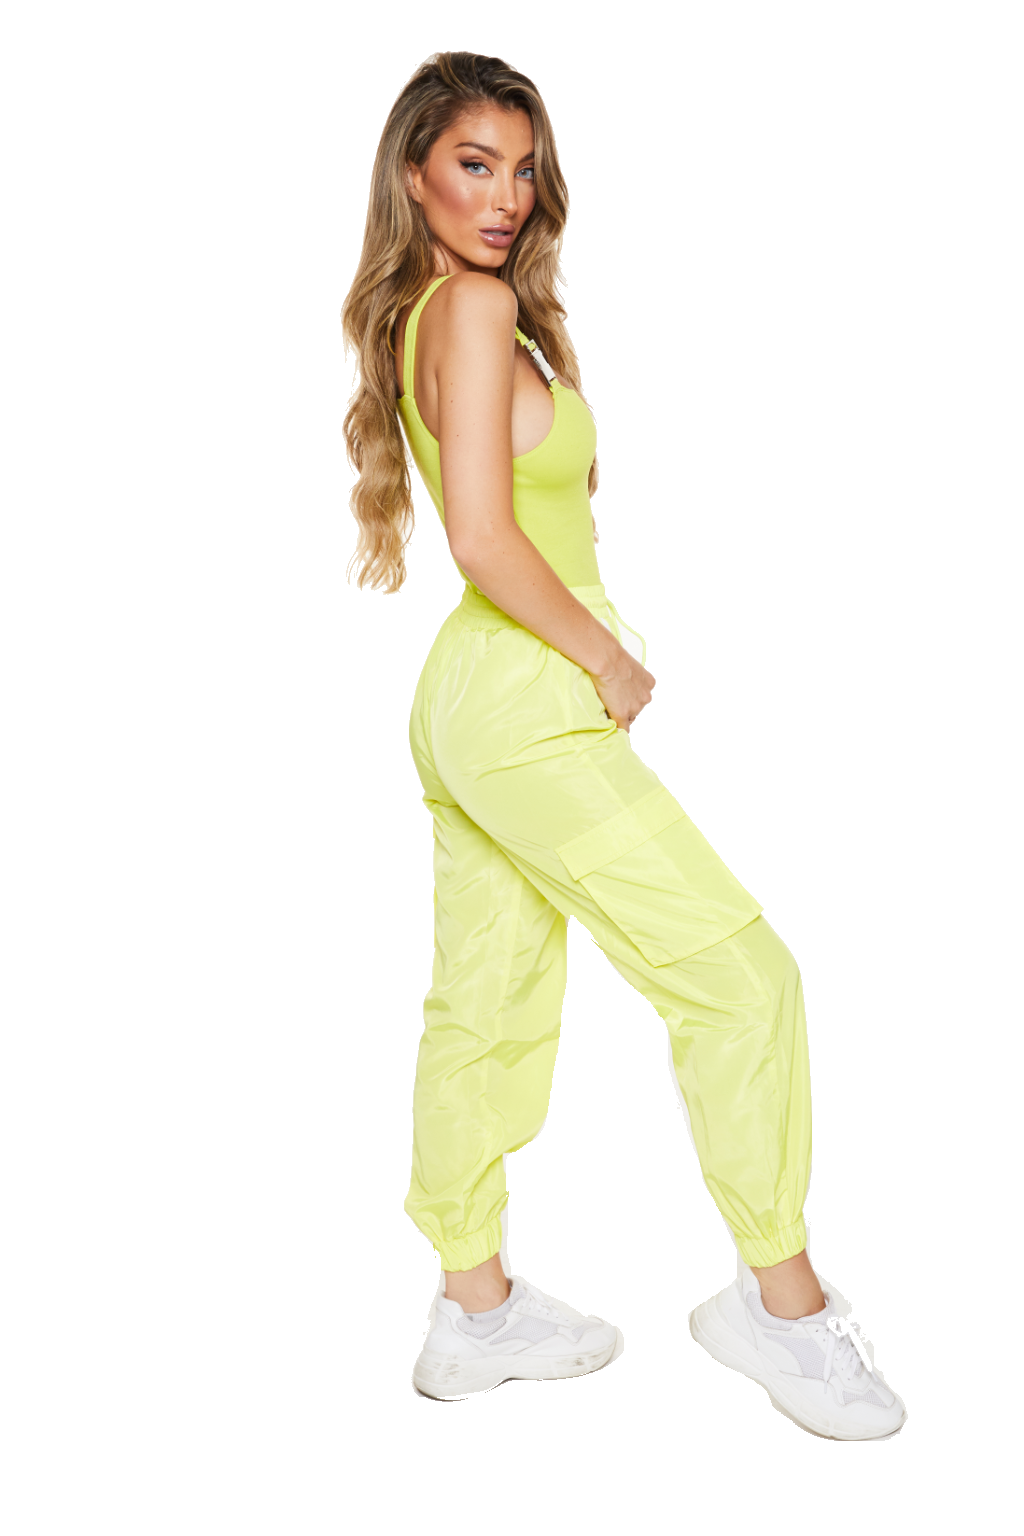 CONSTRUCTION WORKER SWAG - Yellow Track Pants - www.prettyboutique.com